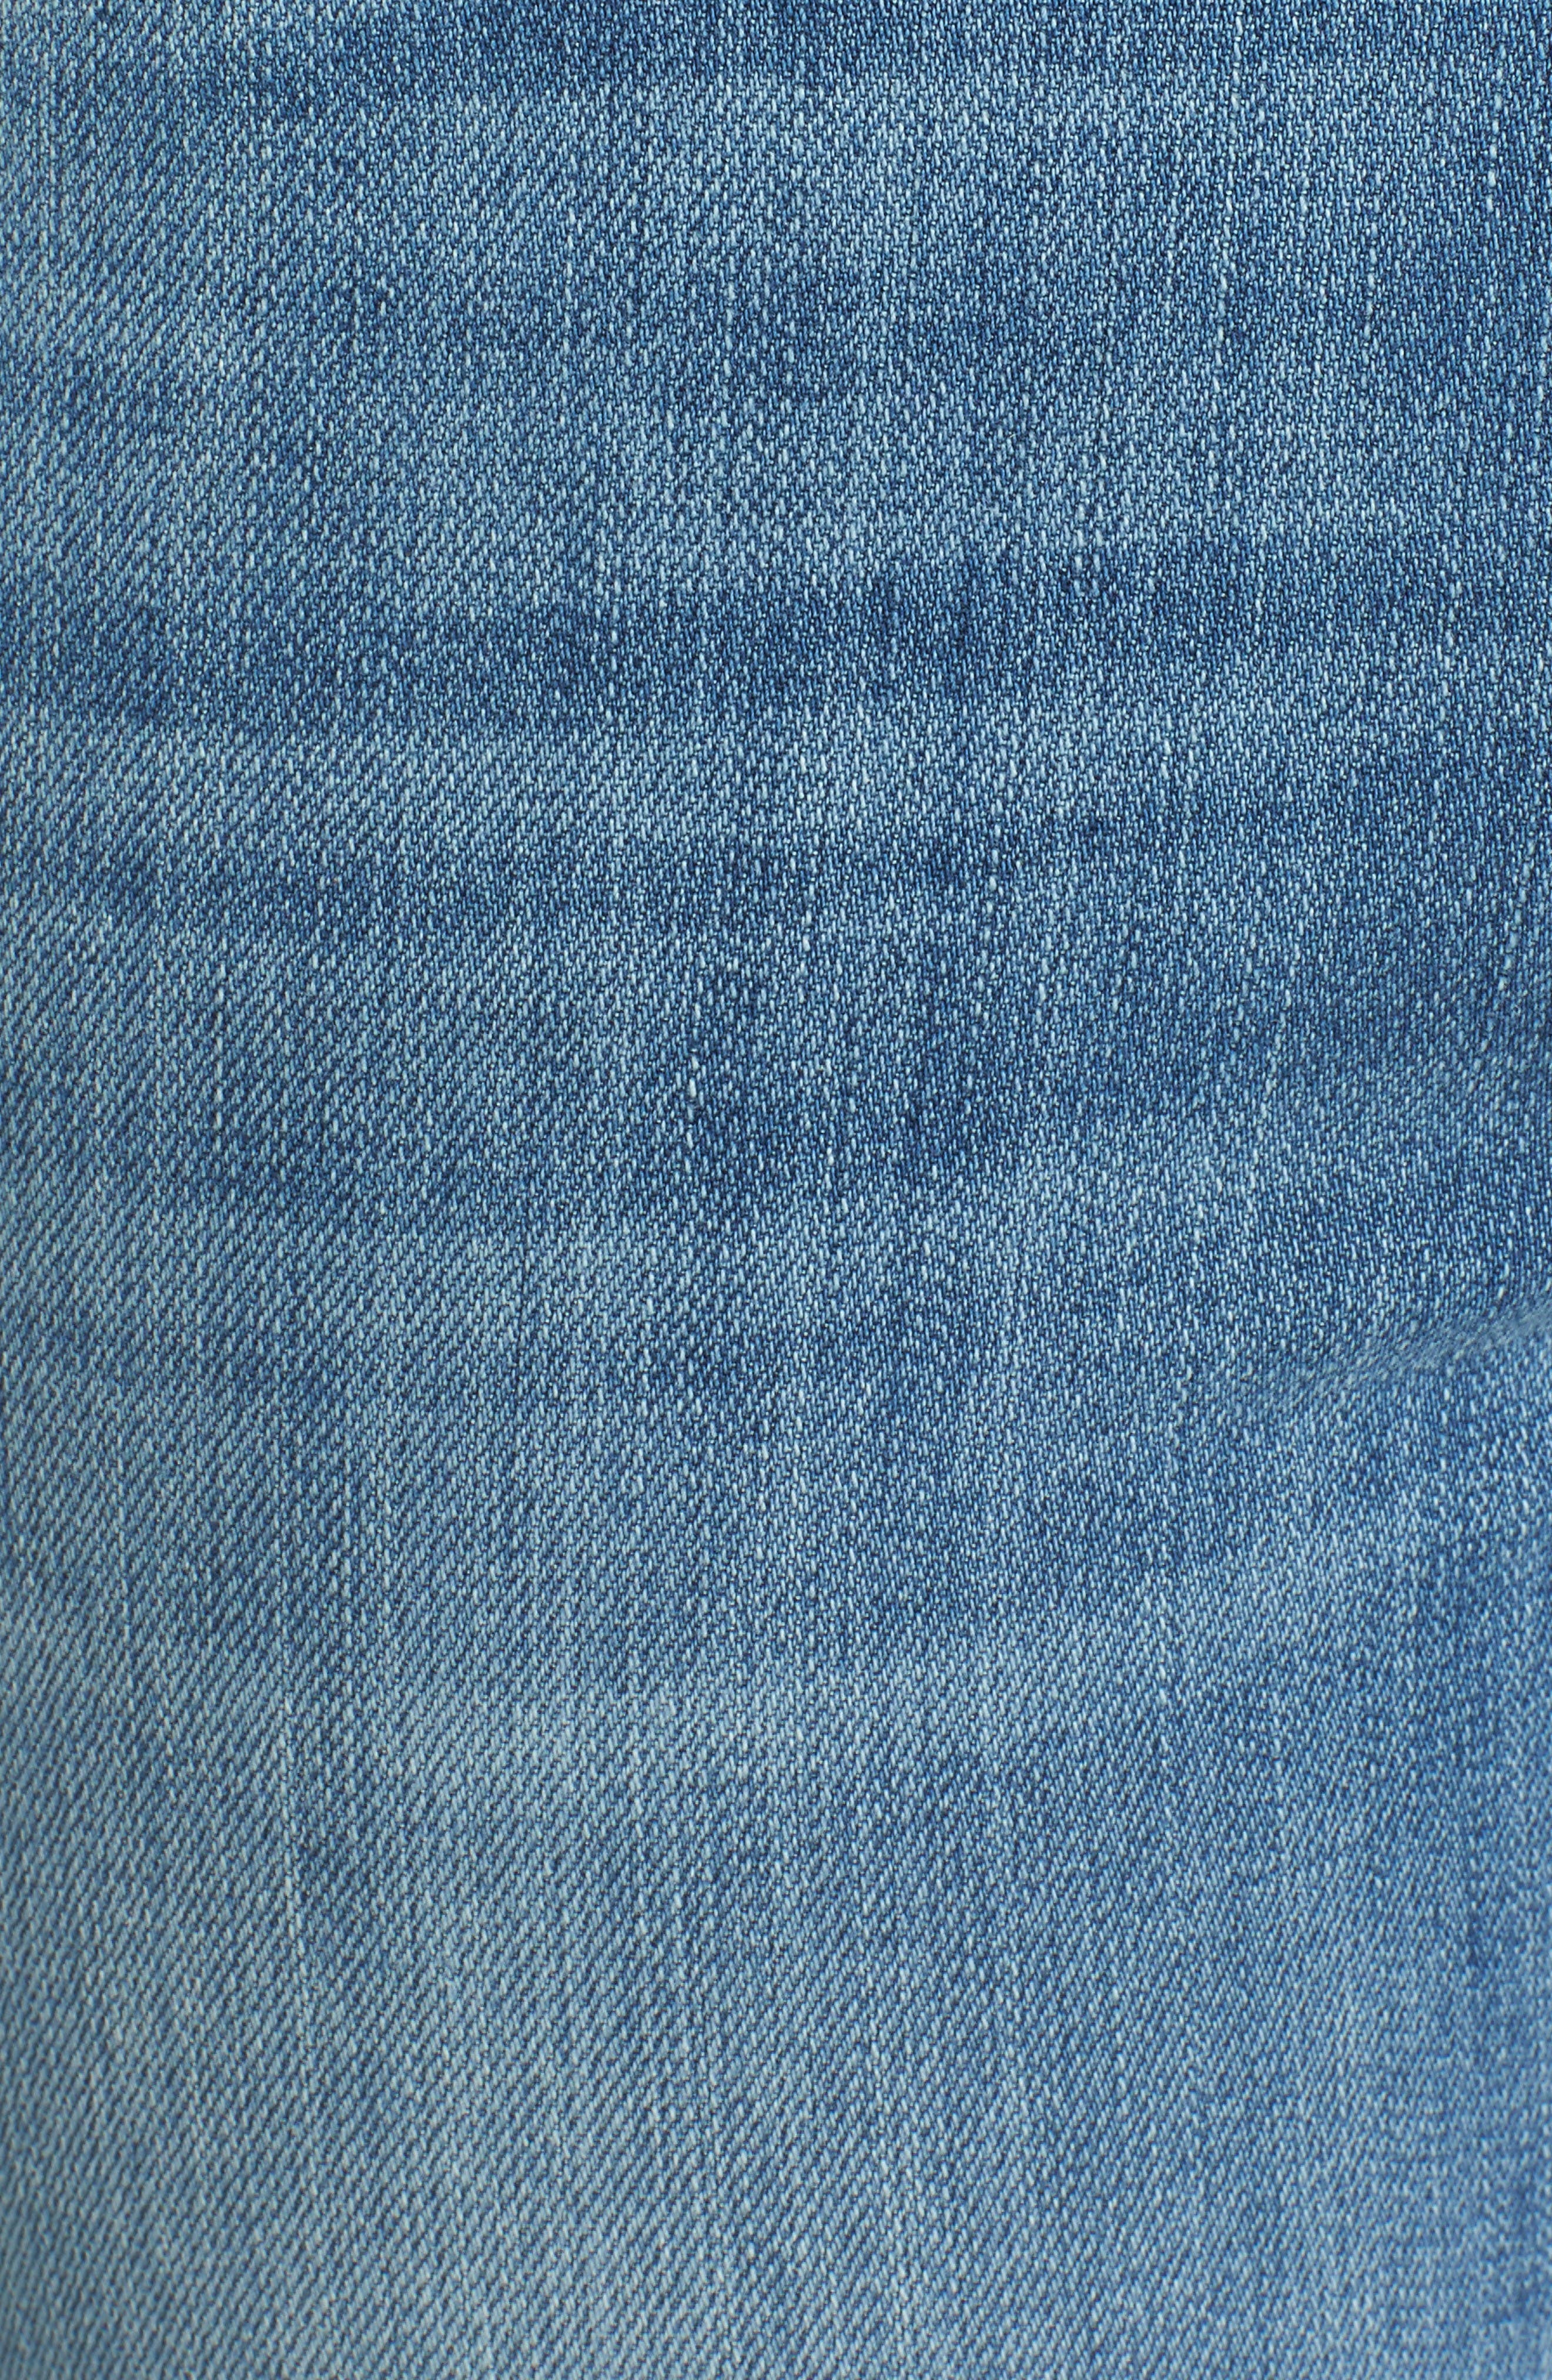 Alternate Image 5  - KUT from the Kloth Reese Frayed Straight Leg Ankle Jeans (Participation)